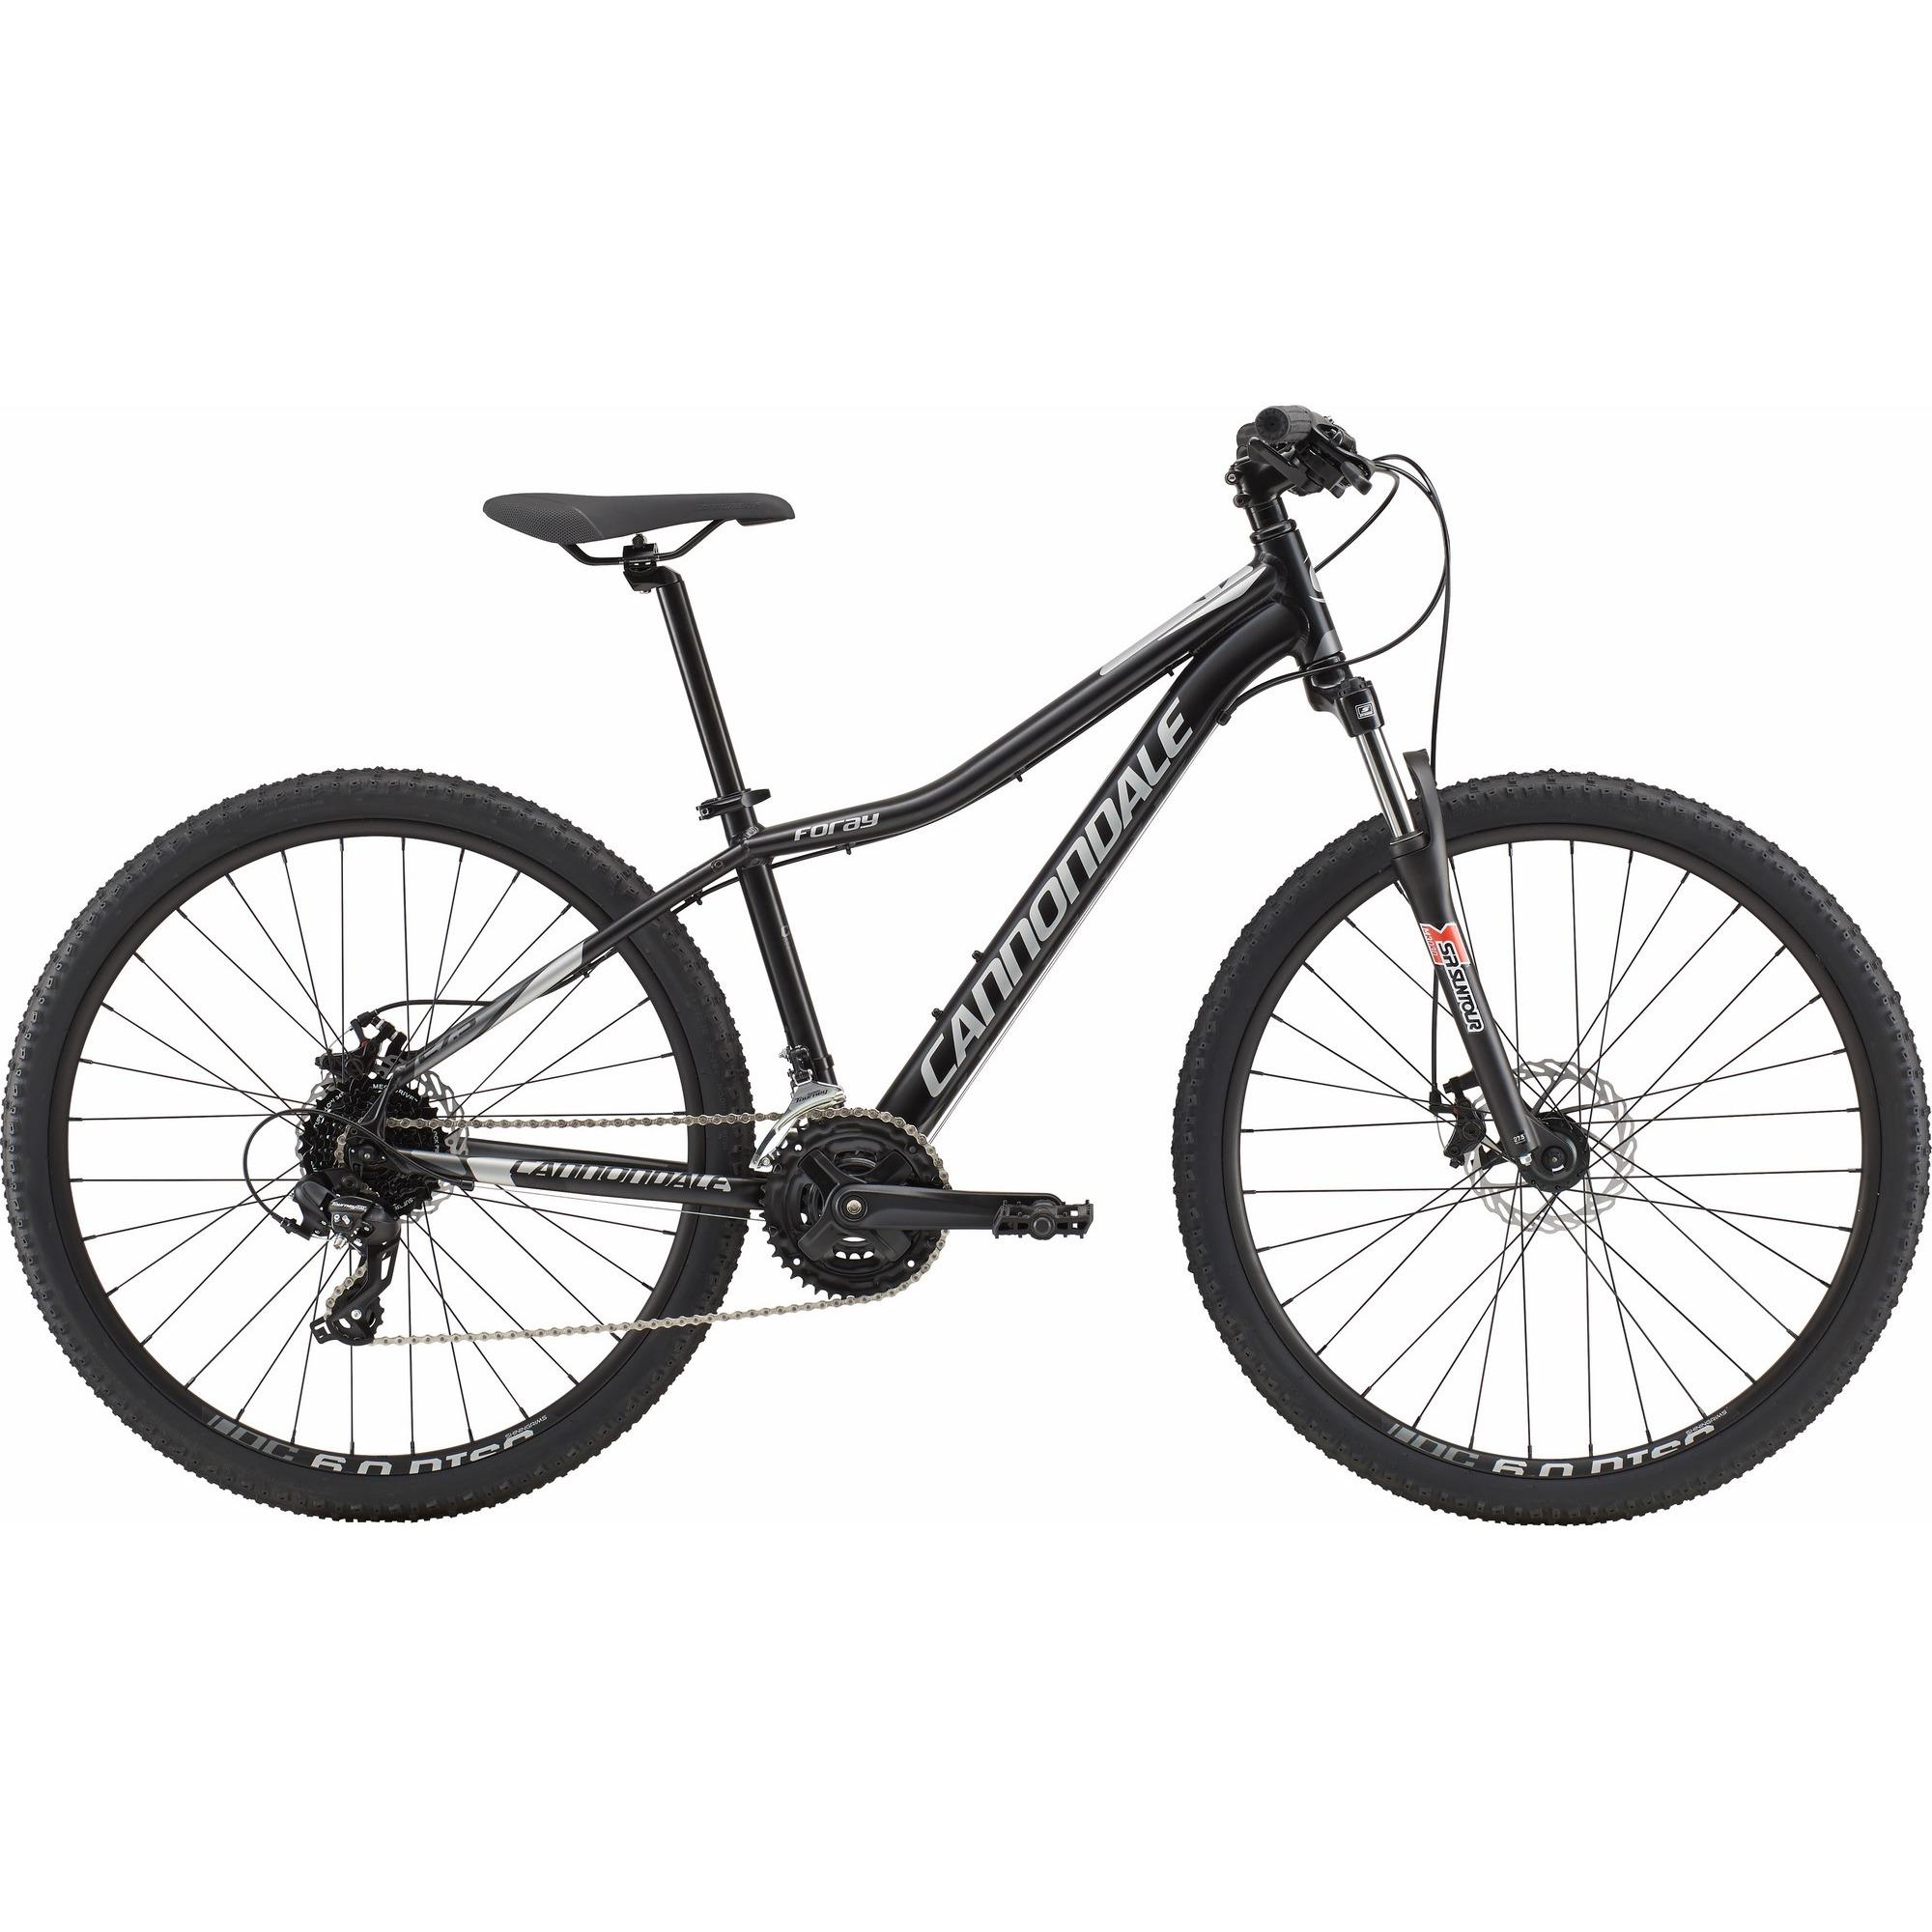 XE ĐẠP CANNONDALE FORAY 4 (BBQ) - Size XS